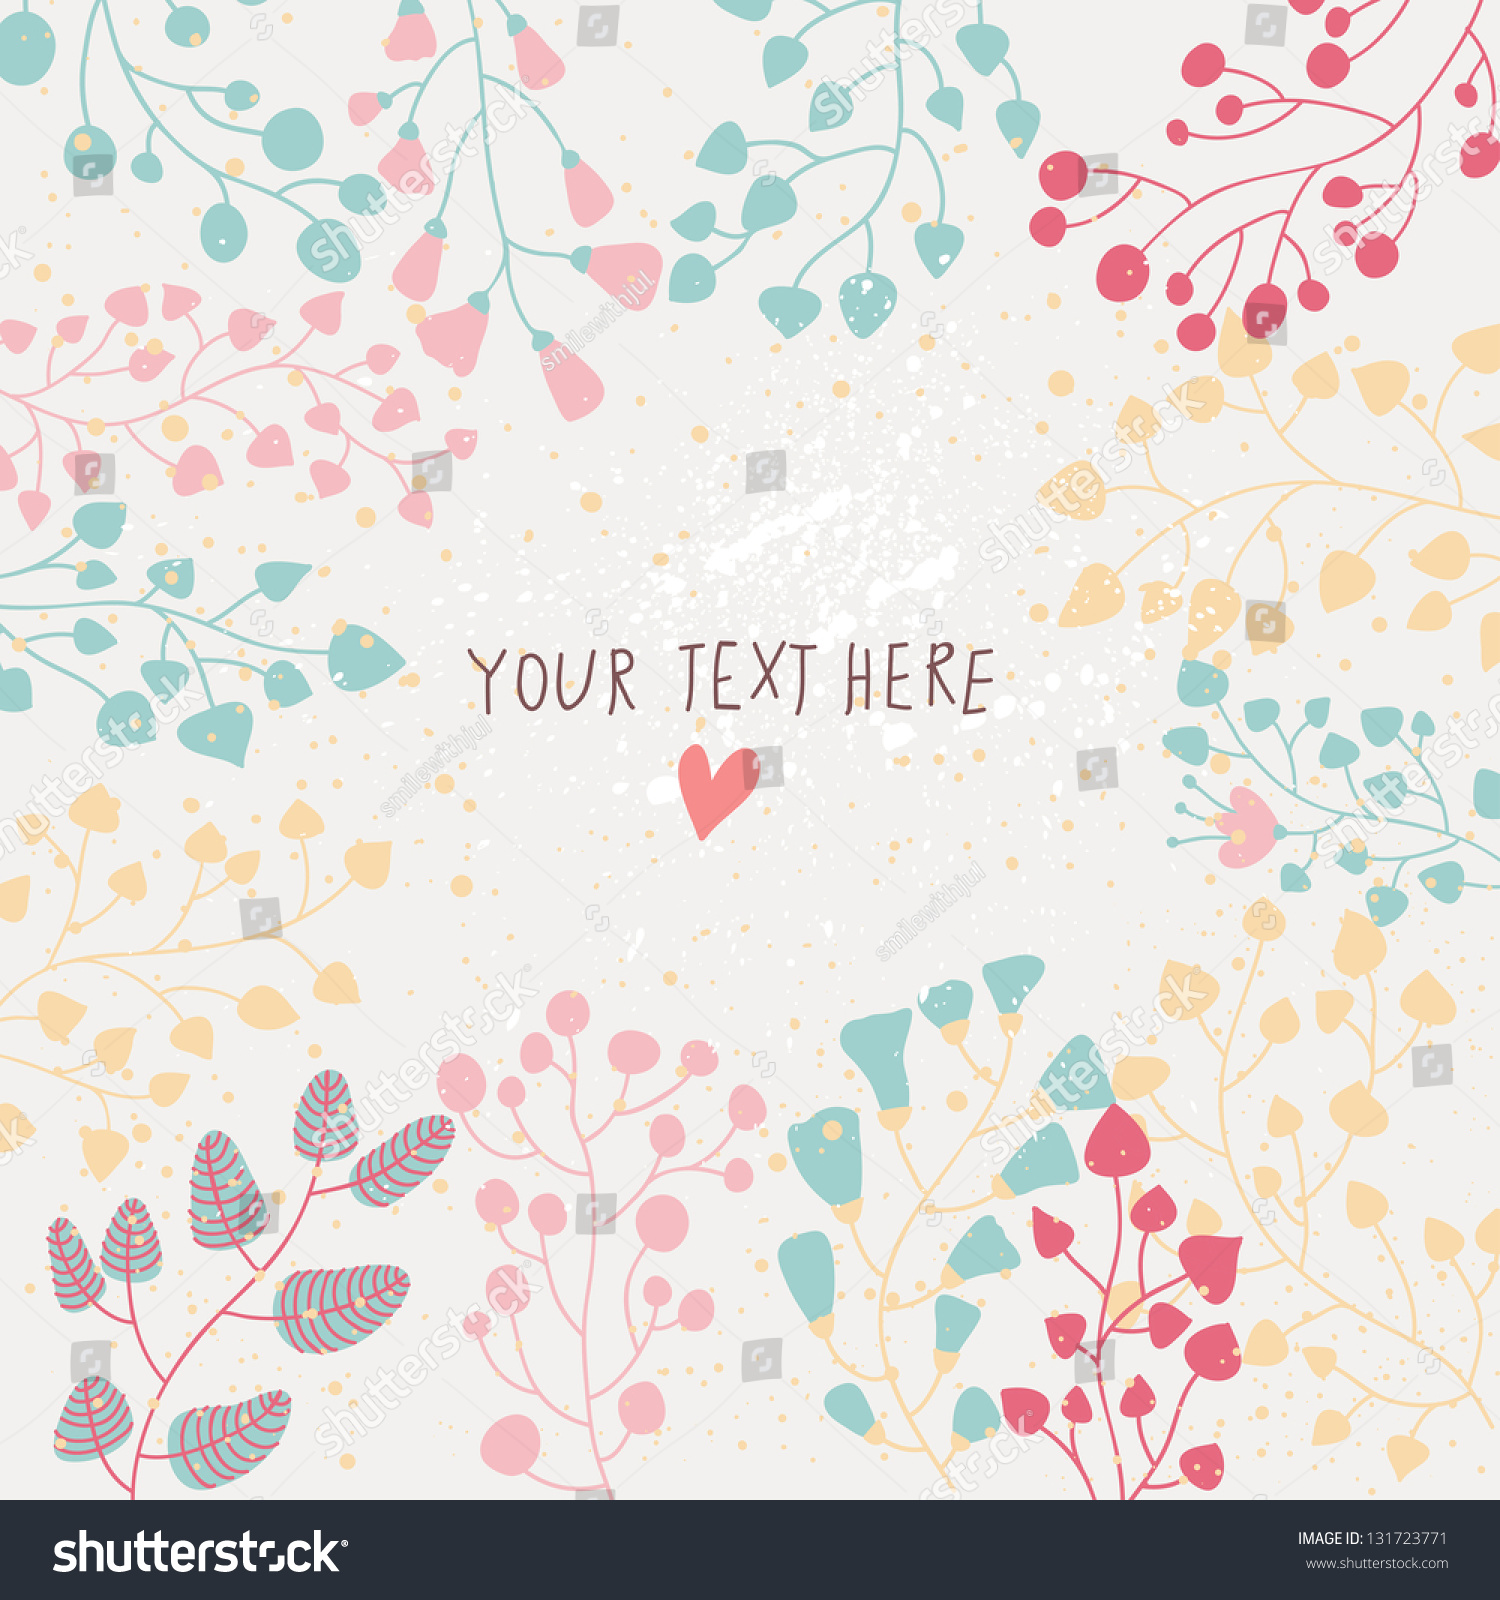 Light floral background vector colorful spring em vetor stock light floral background in vector colorful spring natural invitation stopboris Gallery